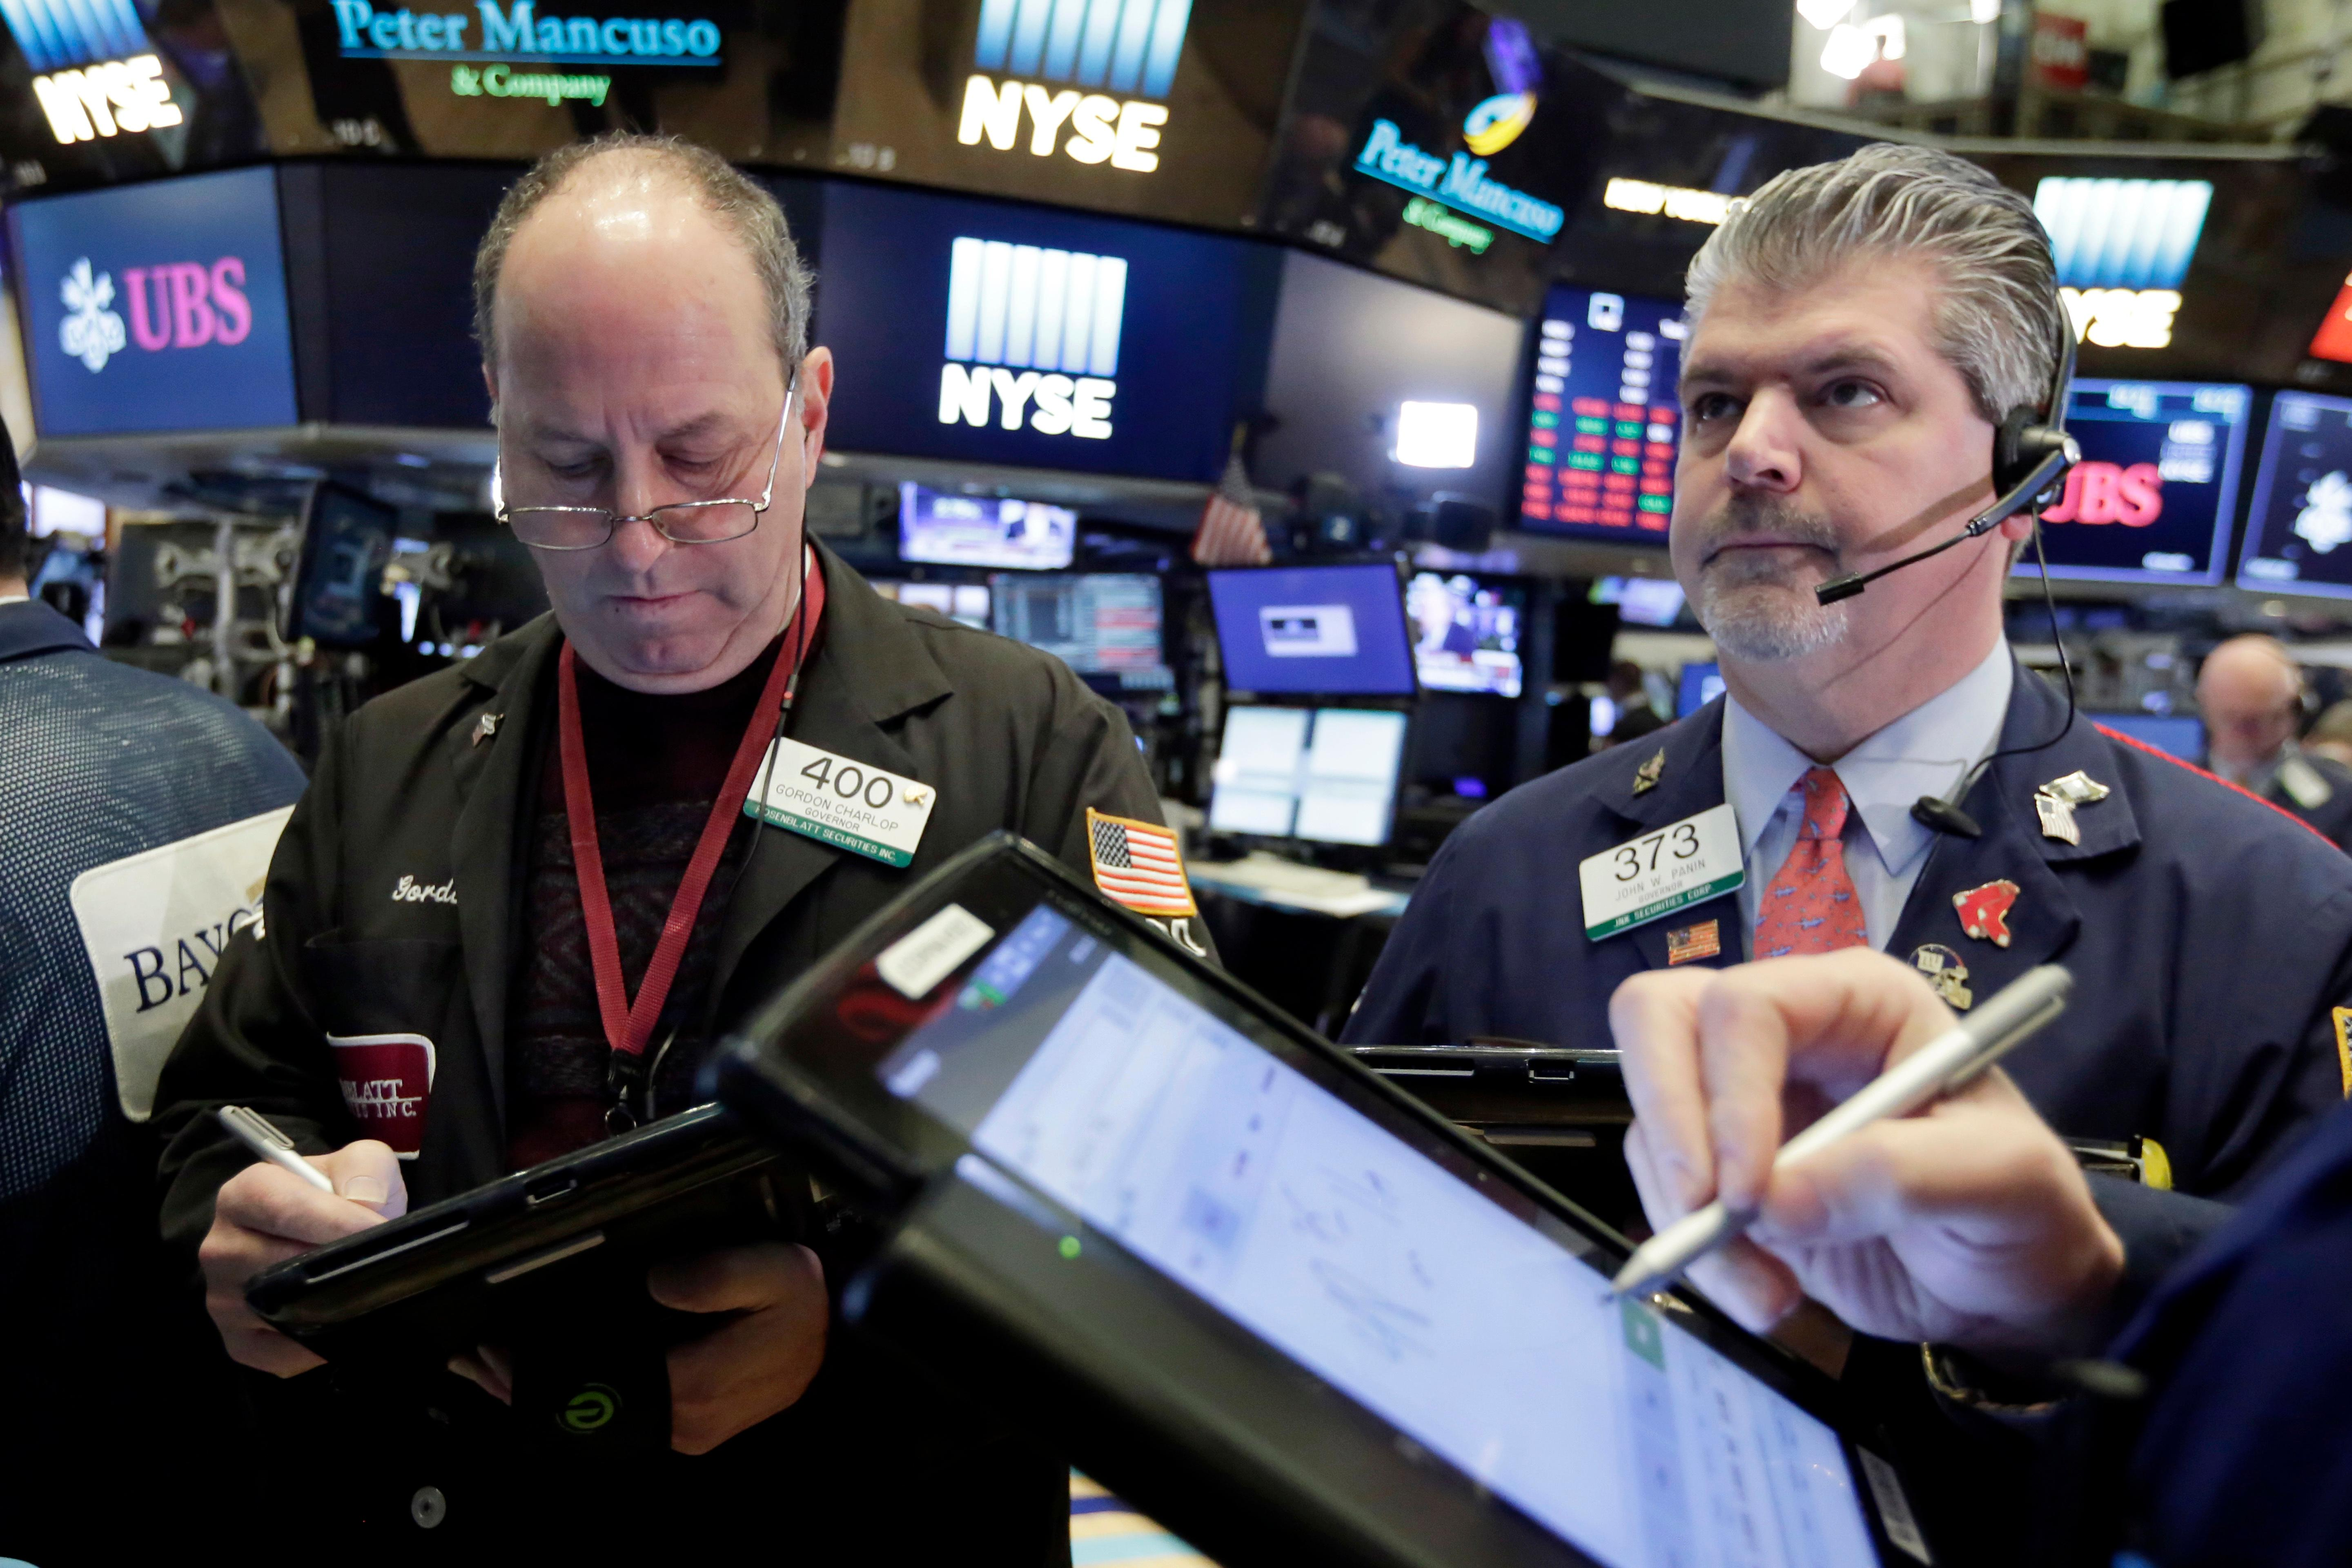 Traders Gordon Charlop, left, and John Panin work on the floor of the New York Stock Exchange, Tuesday, Feb. 6, 2018. The Dow Jones industrial average fell as much as 500 points in early trading, bringing the index down 10 percent from the record high it reached on Jan. 26.{&amp;nbsp;} (AP Photo/Richard Drew)<p></p>